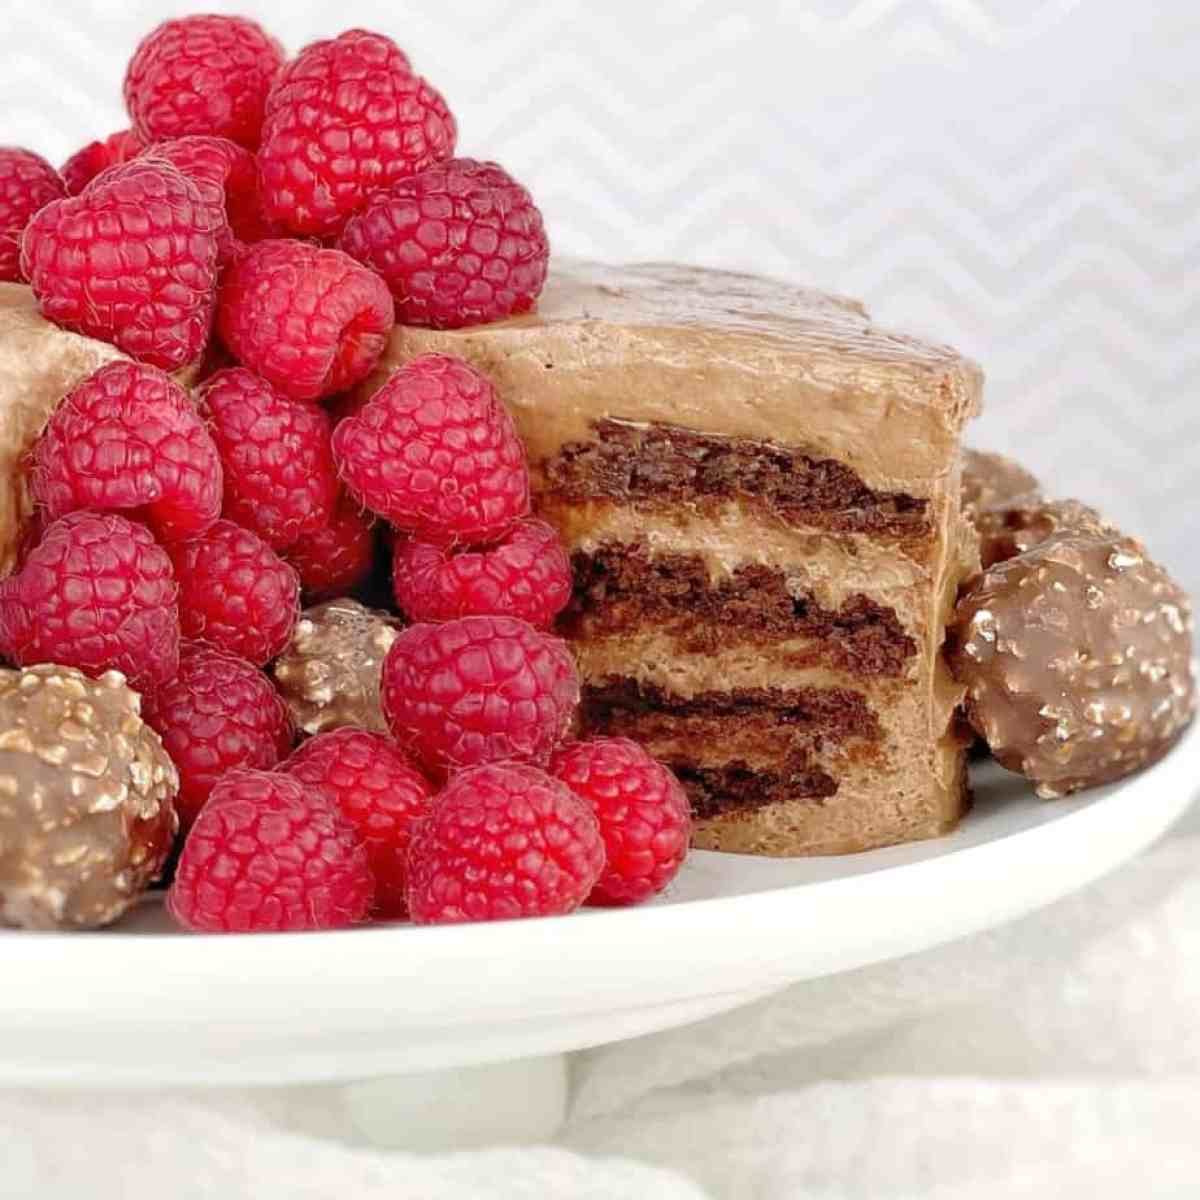 biscuit and cream cake with raspberries on a white plate